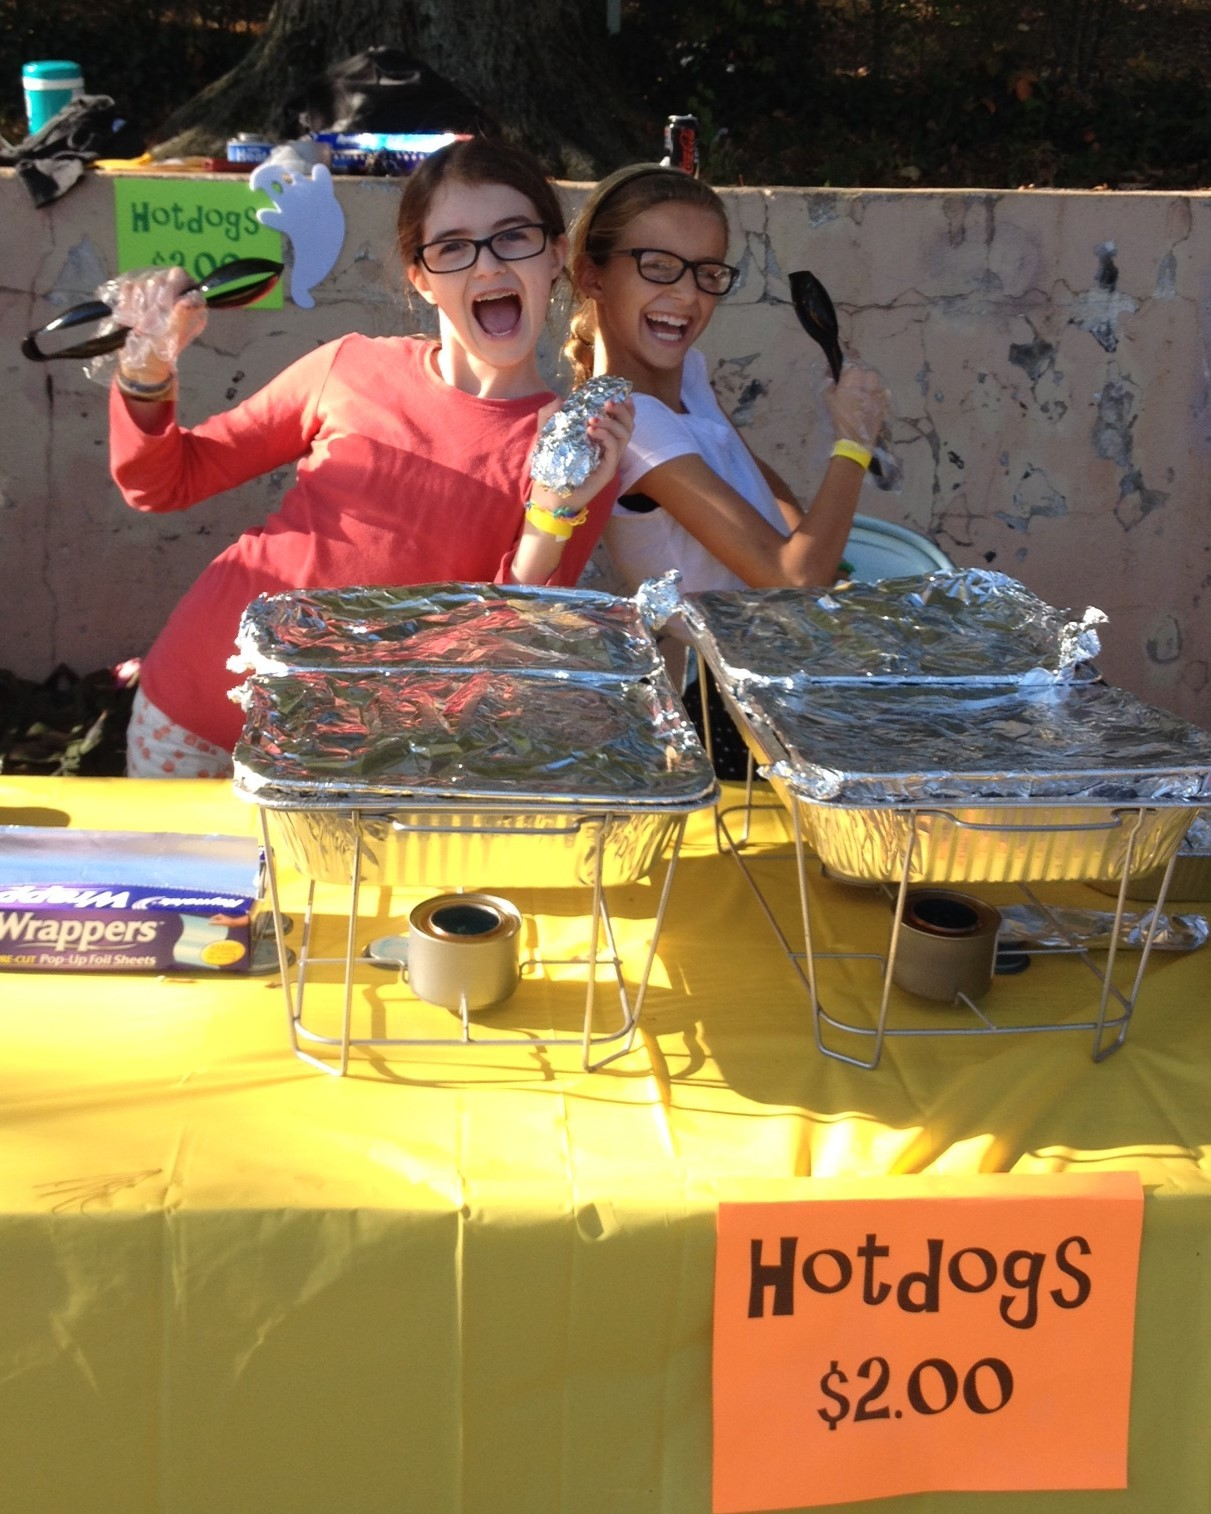 846e860e54b81586fc40_5th_graders_selling_hot_dogs_at_the_Wyoming_School_s_Fall_Festival.JPG